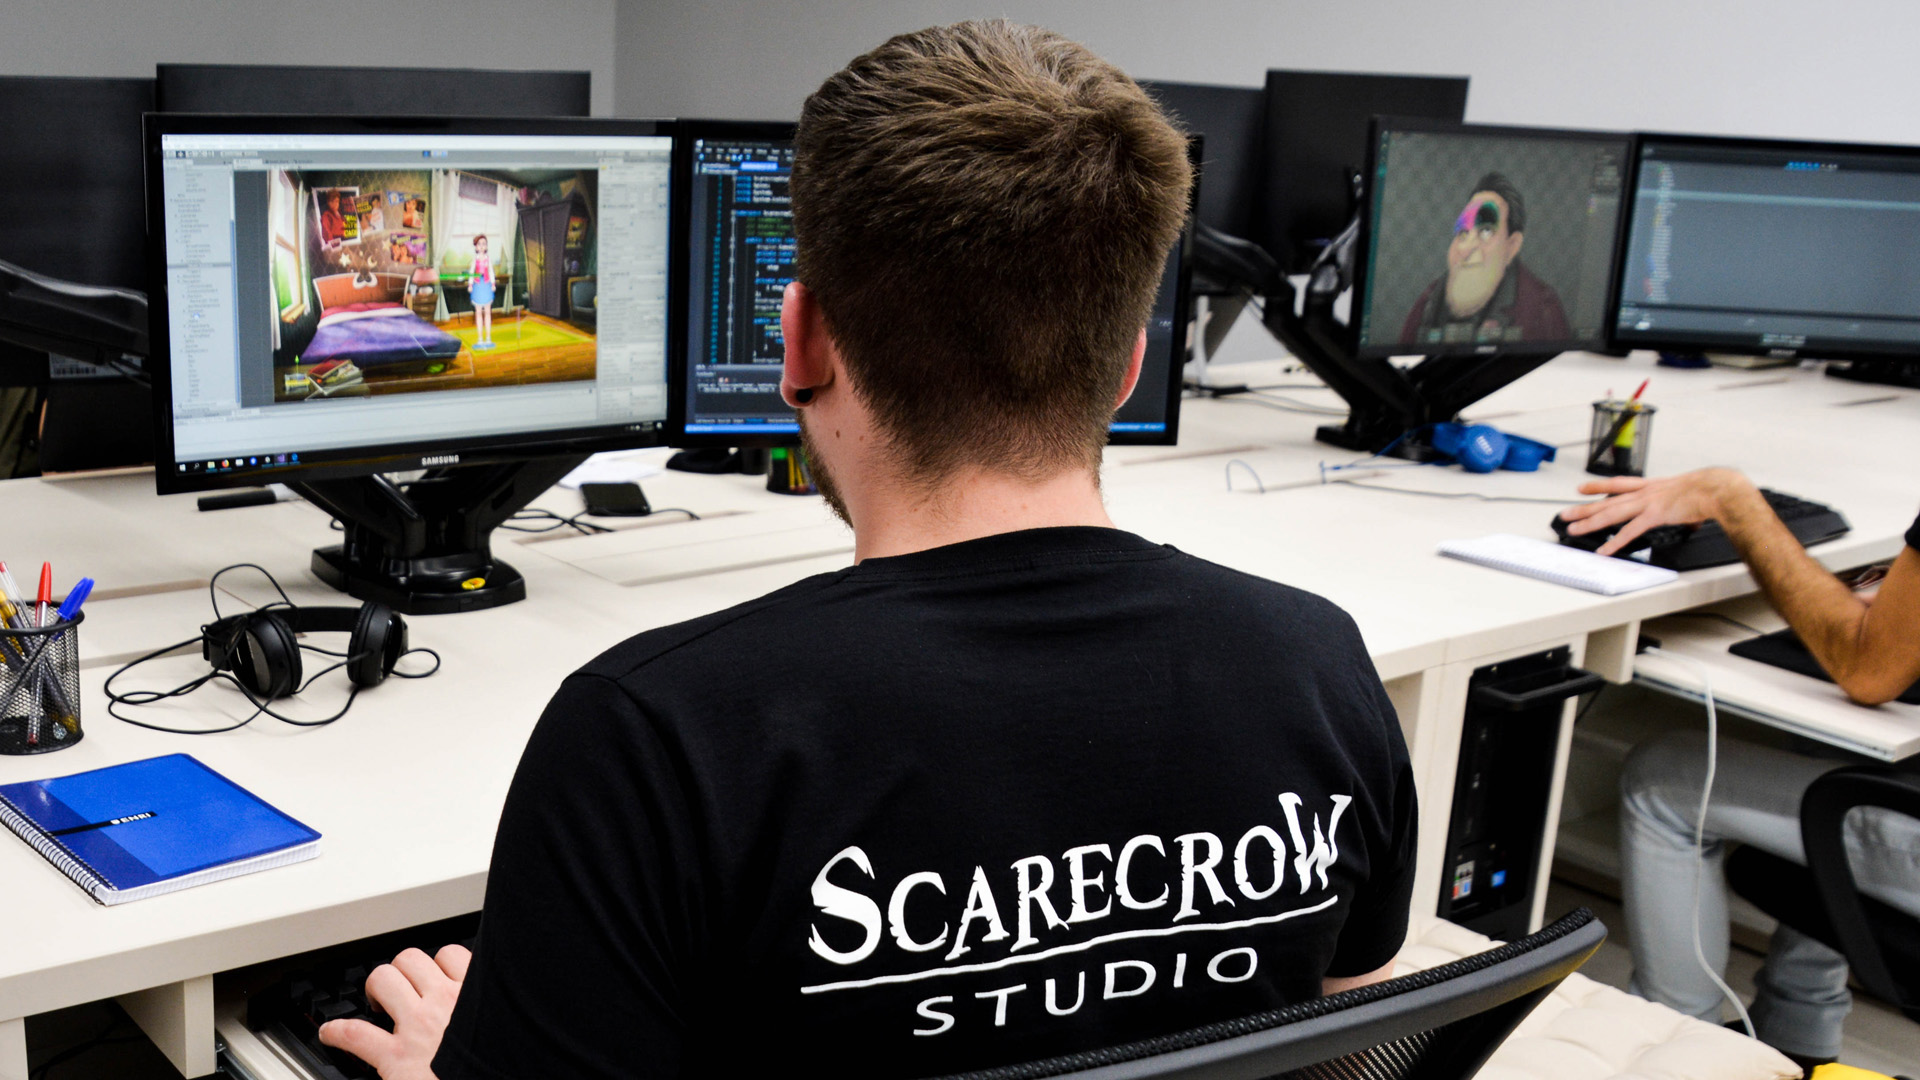 Scarecrow_Studio_Team_and_Office.1.jpg